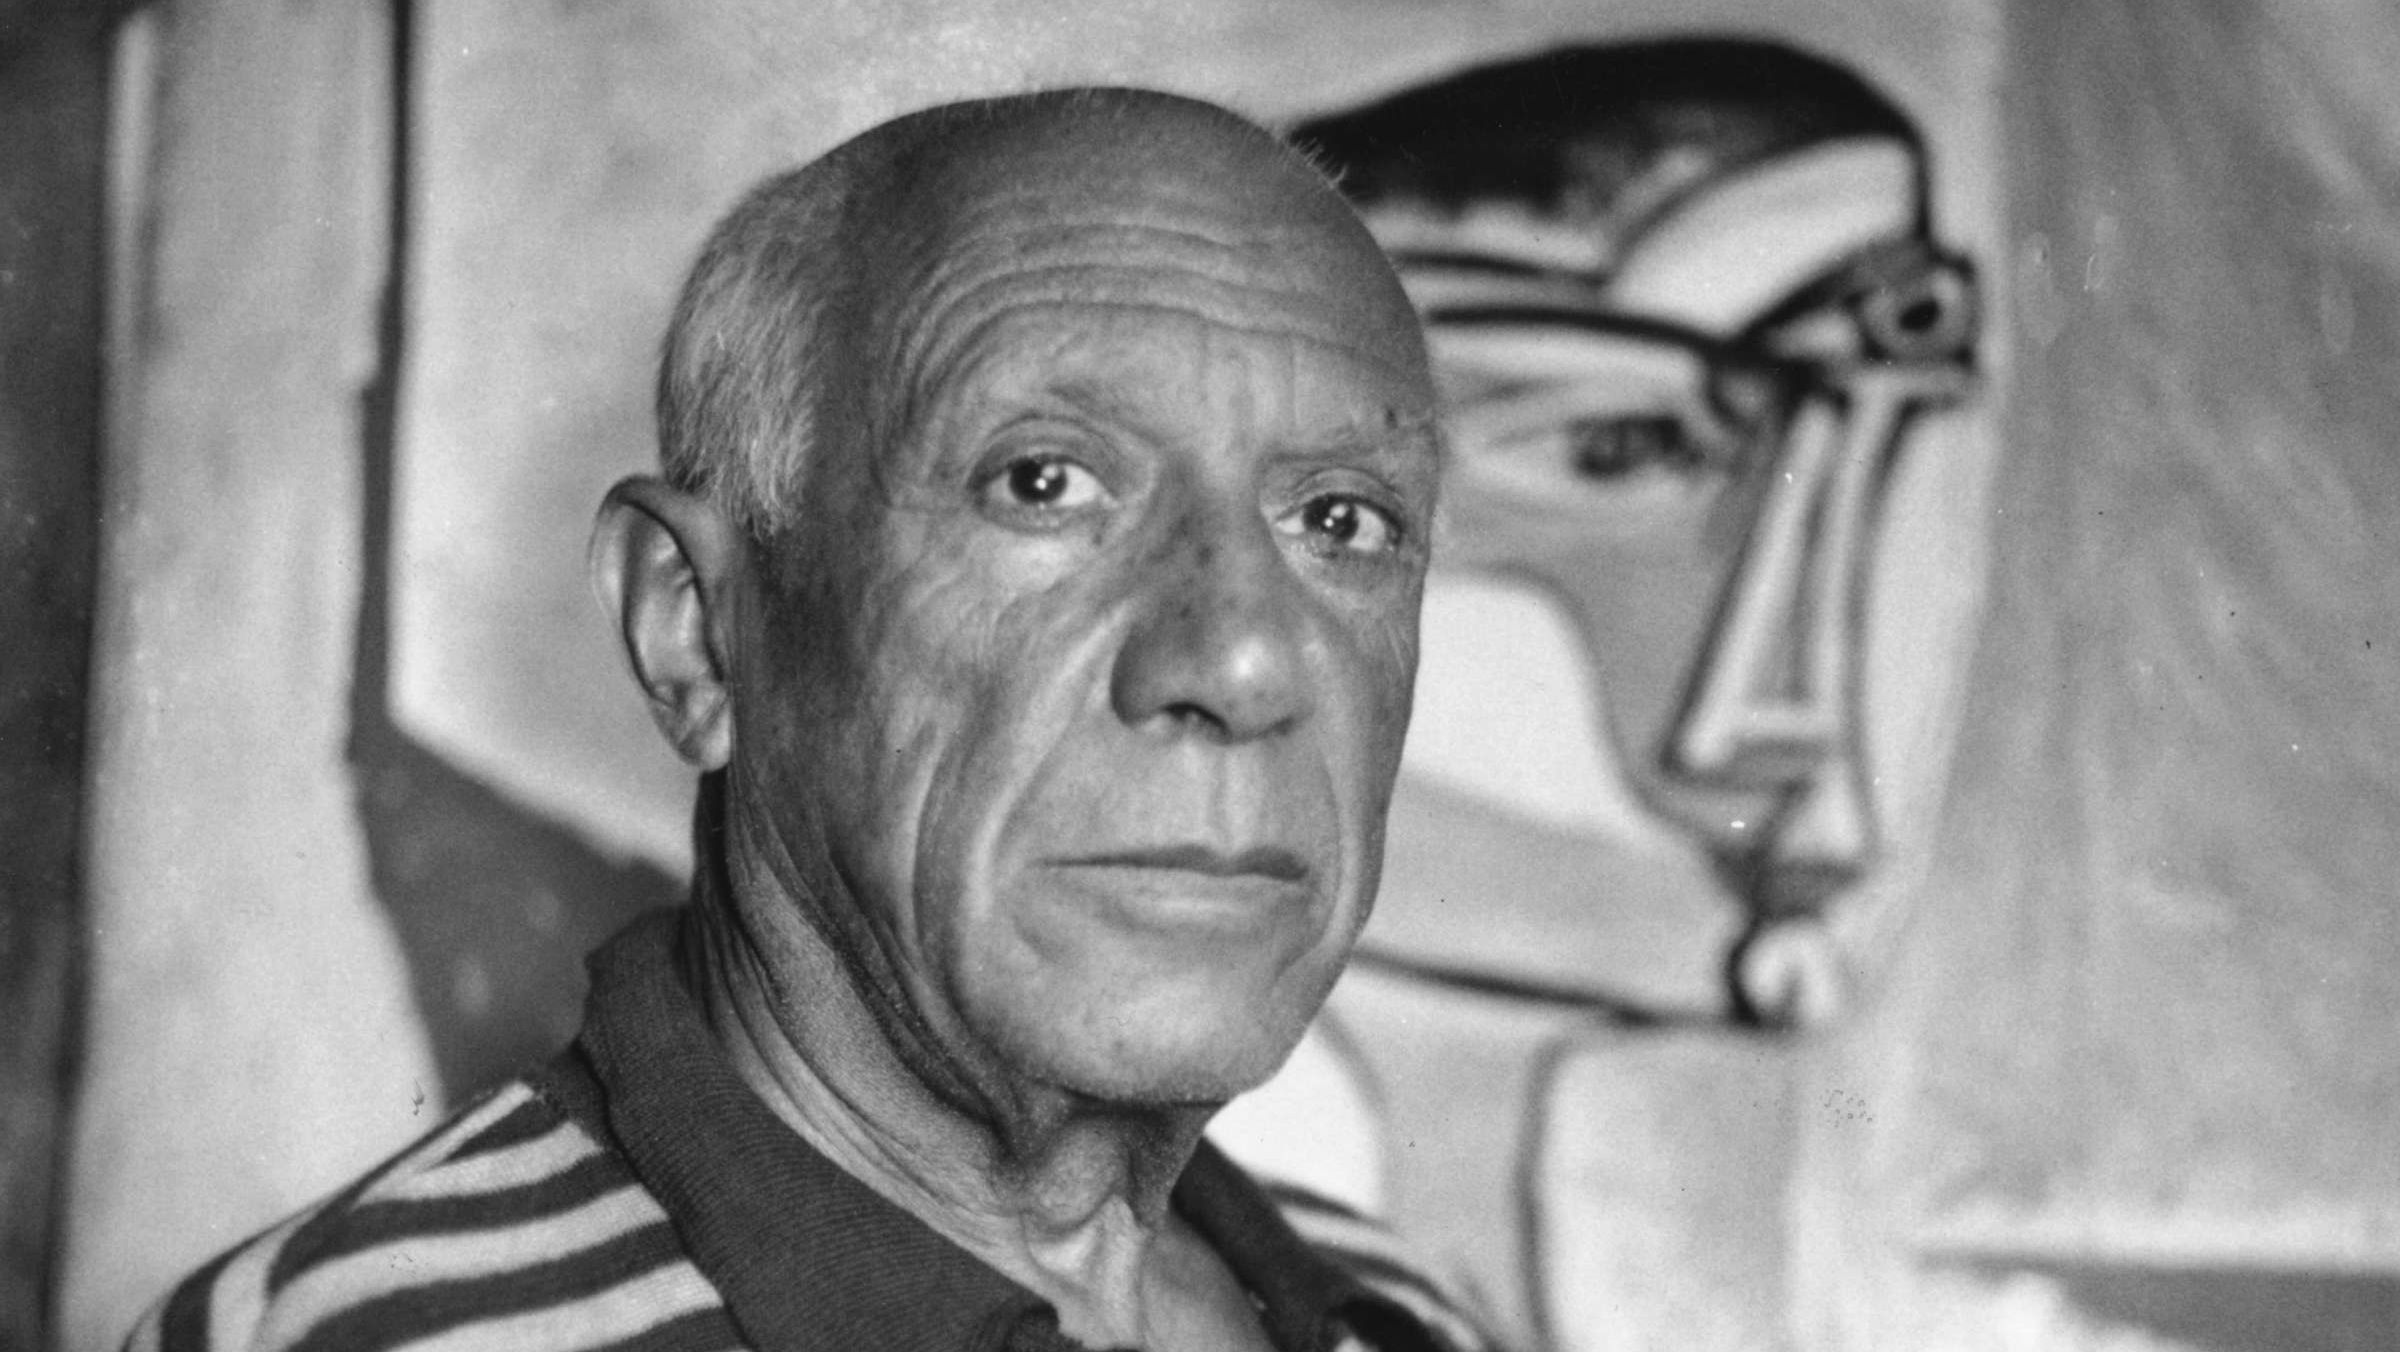 8 Things To Know About Pablo Picasso